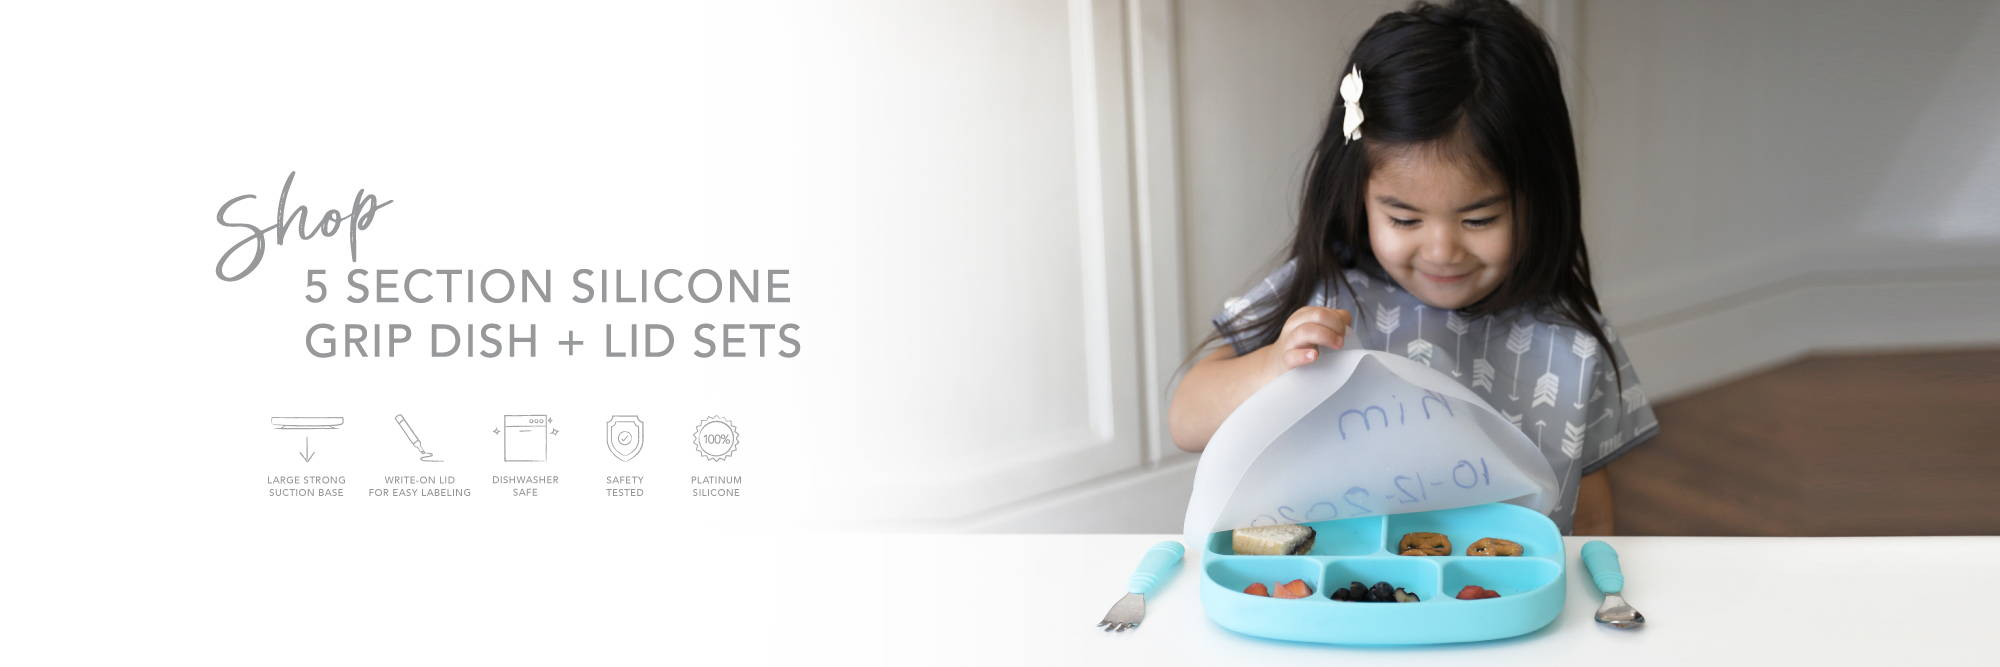 shop 5 section silicone grip dish and lid sets, strong suction base, great for baby-led weaning, encourages learning, safety tested, platinum silicone